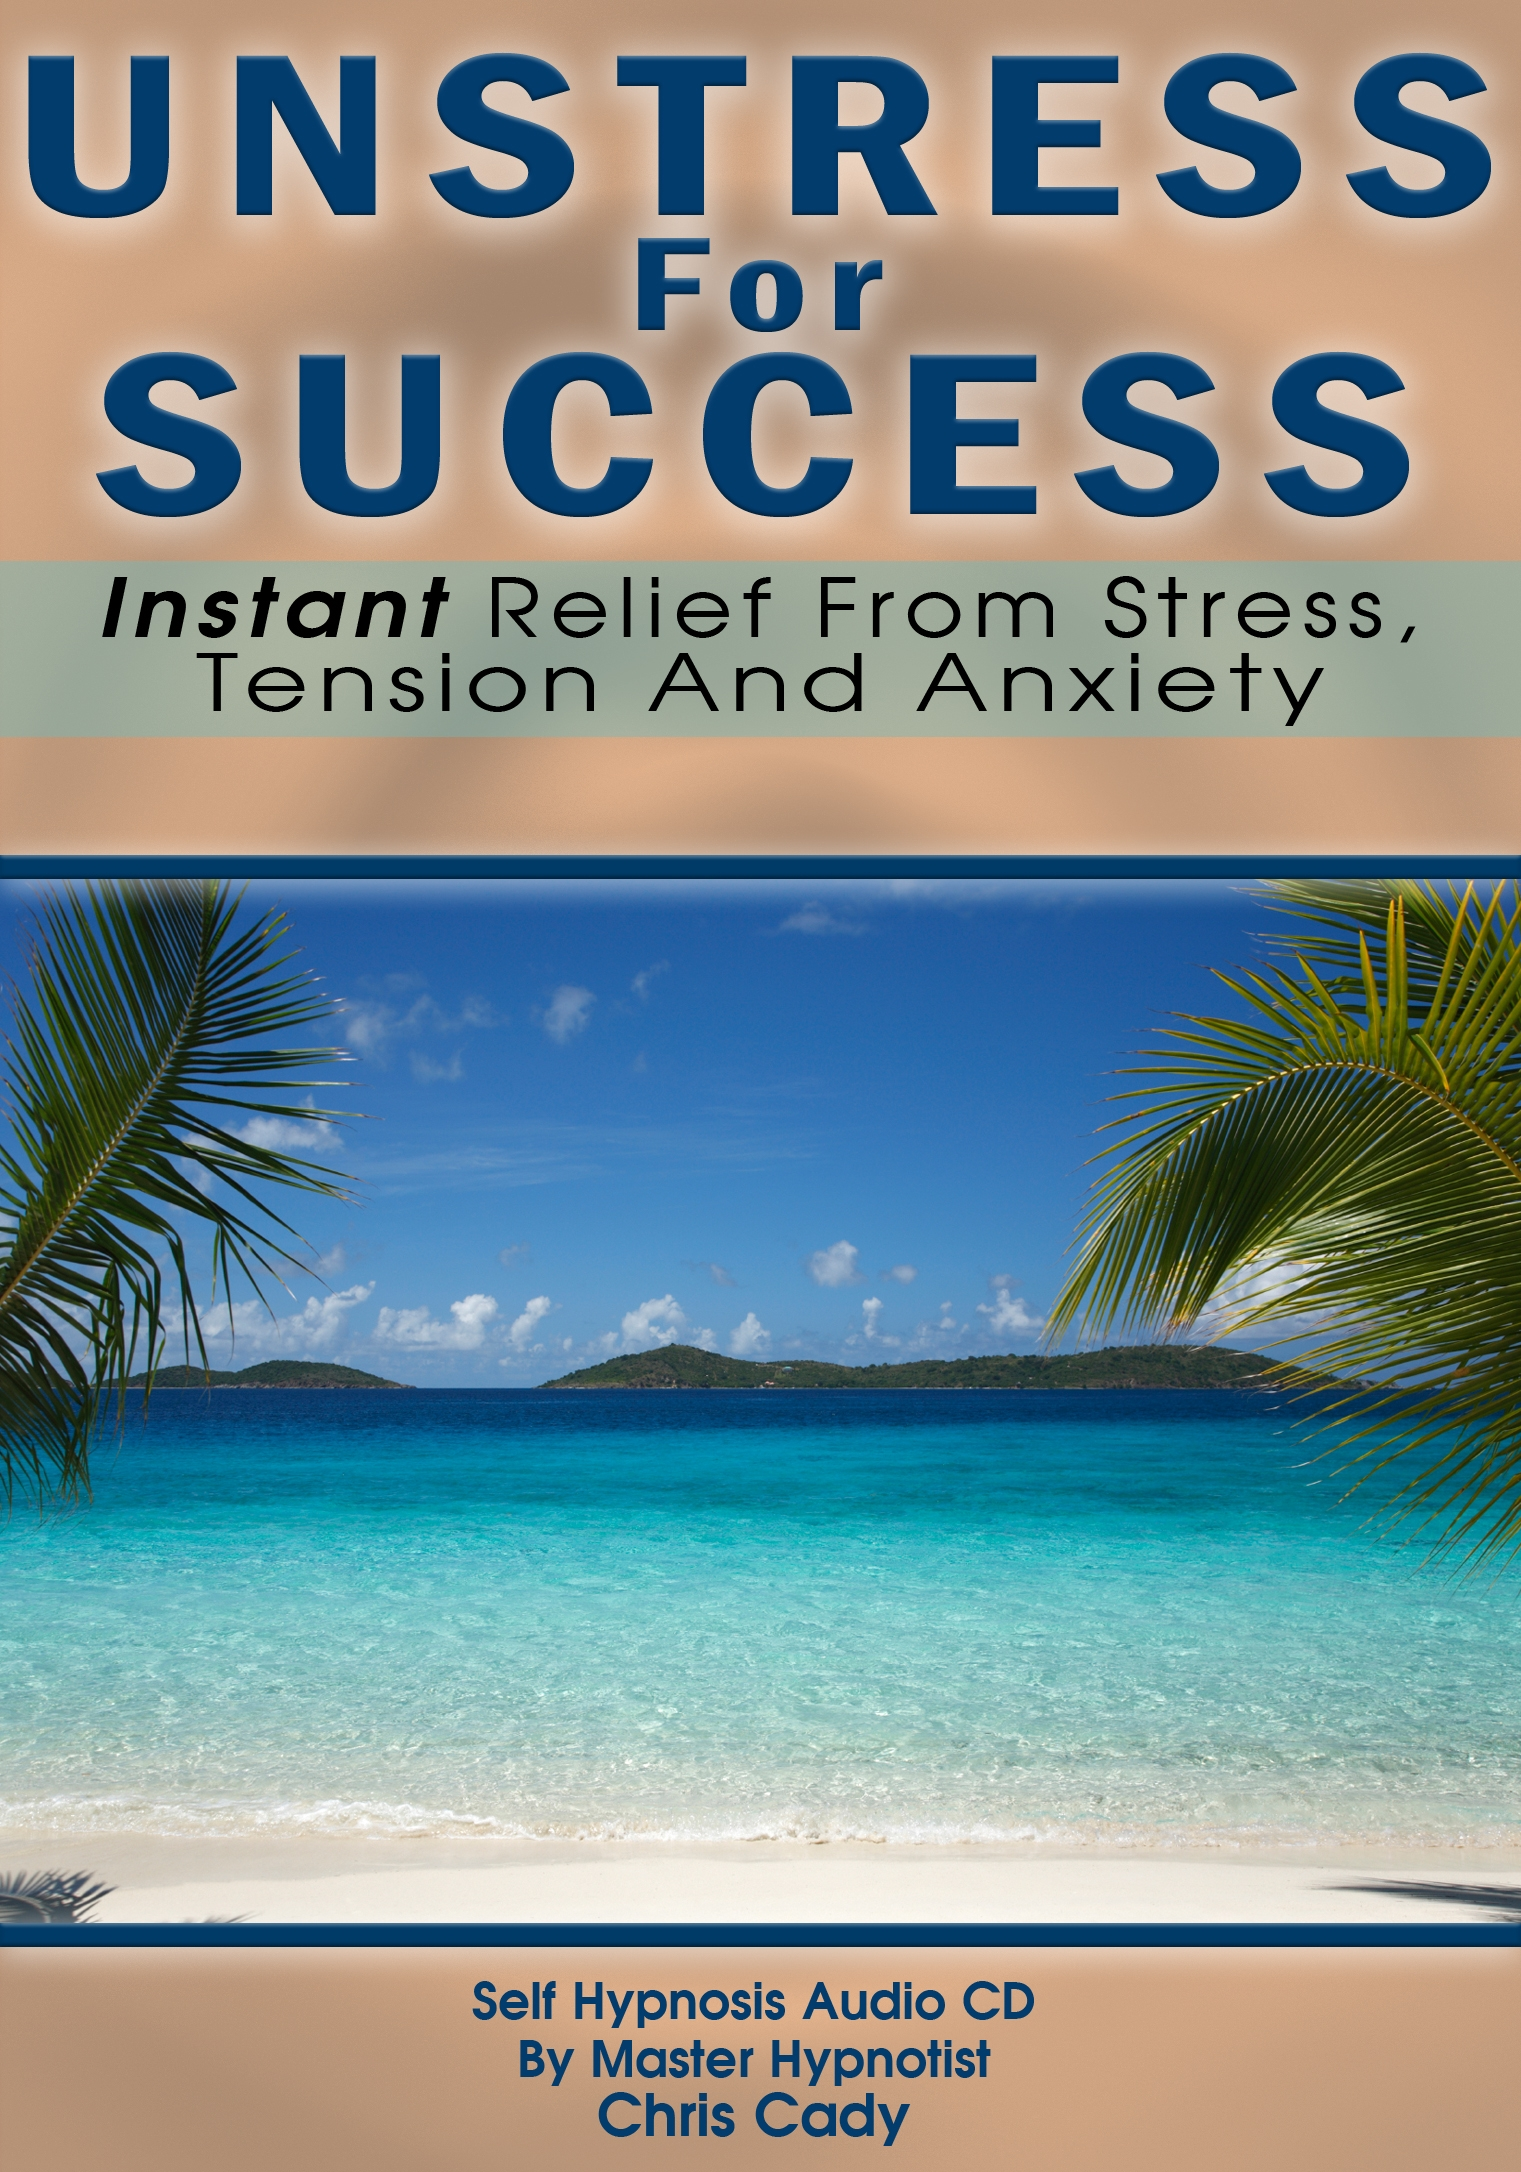 hypnosis stress reduction unstress for success cd and mp3 download